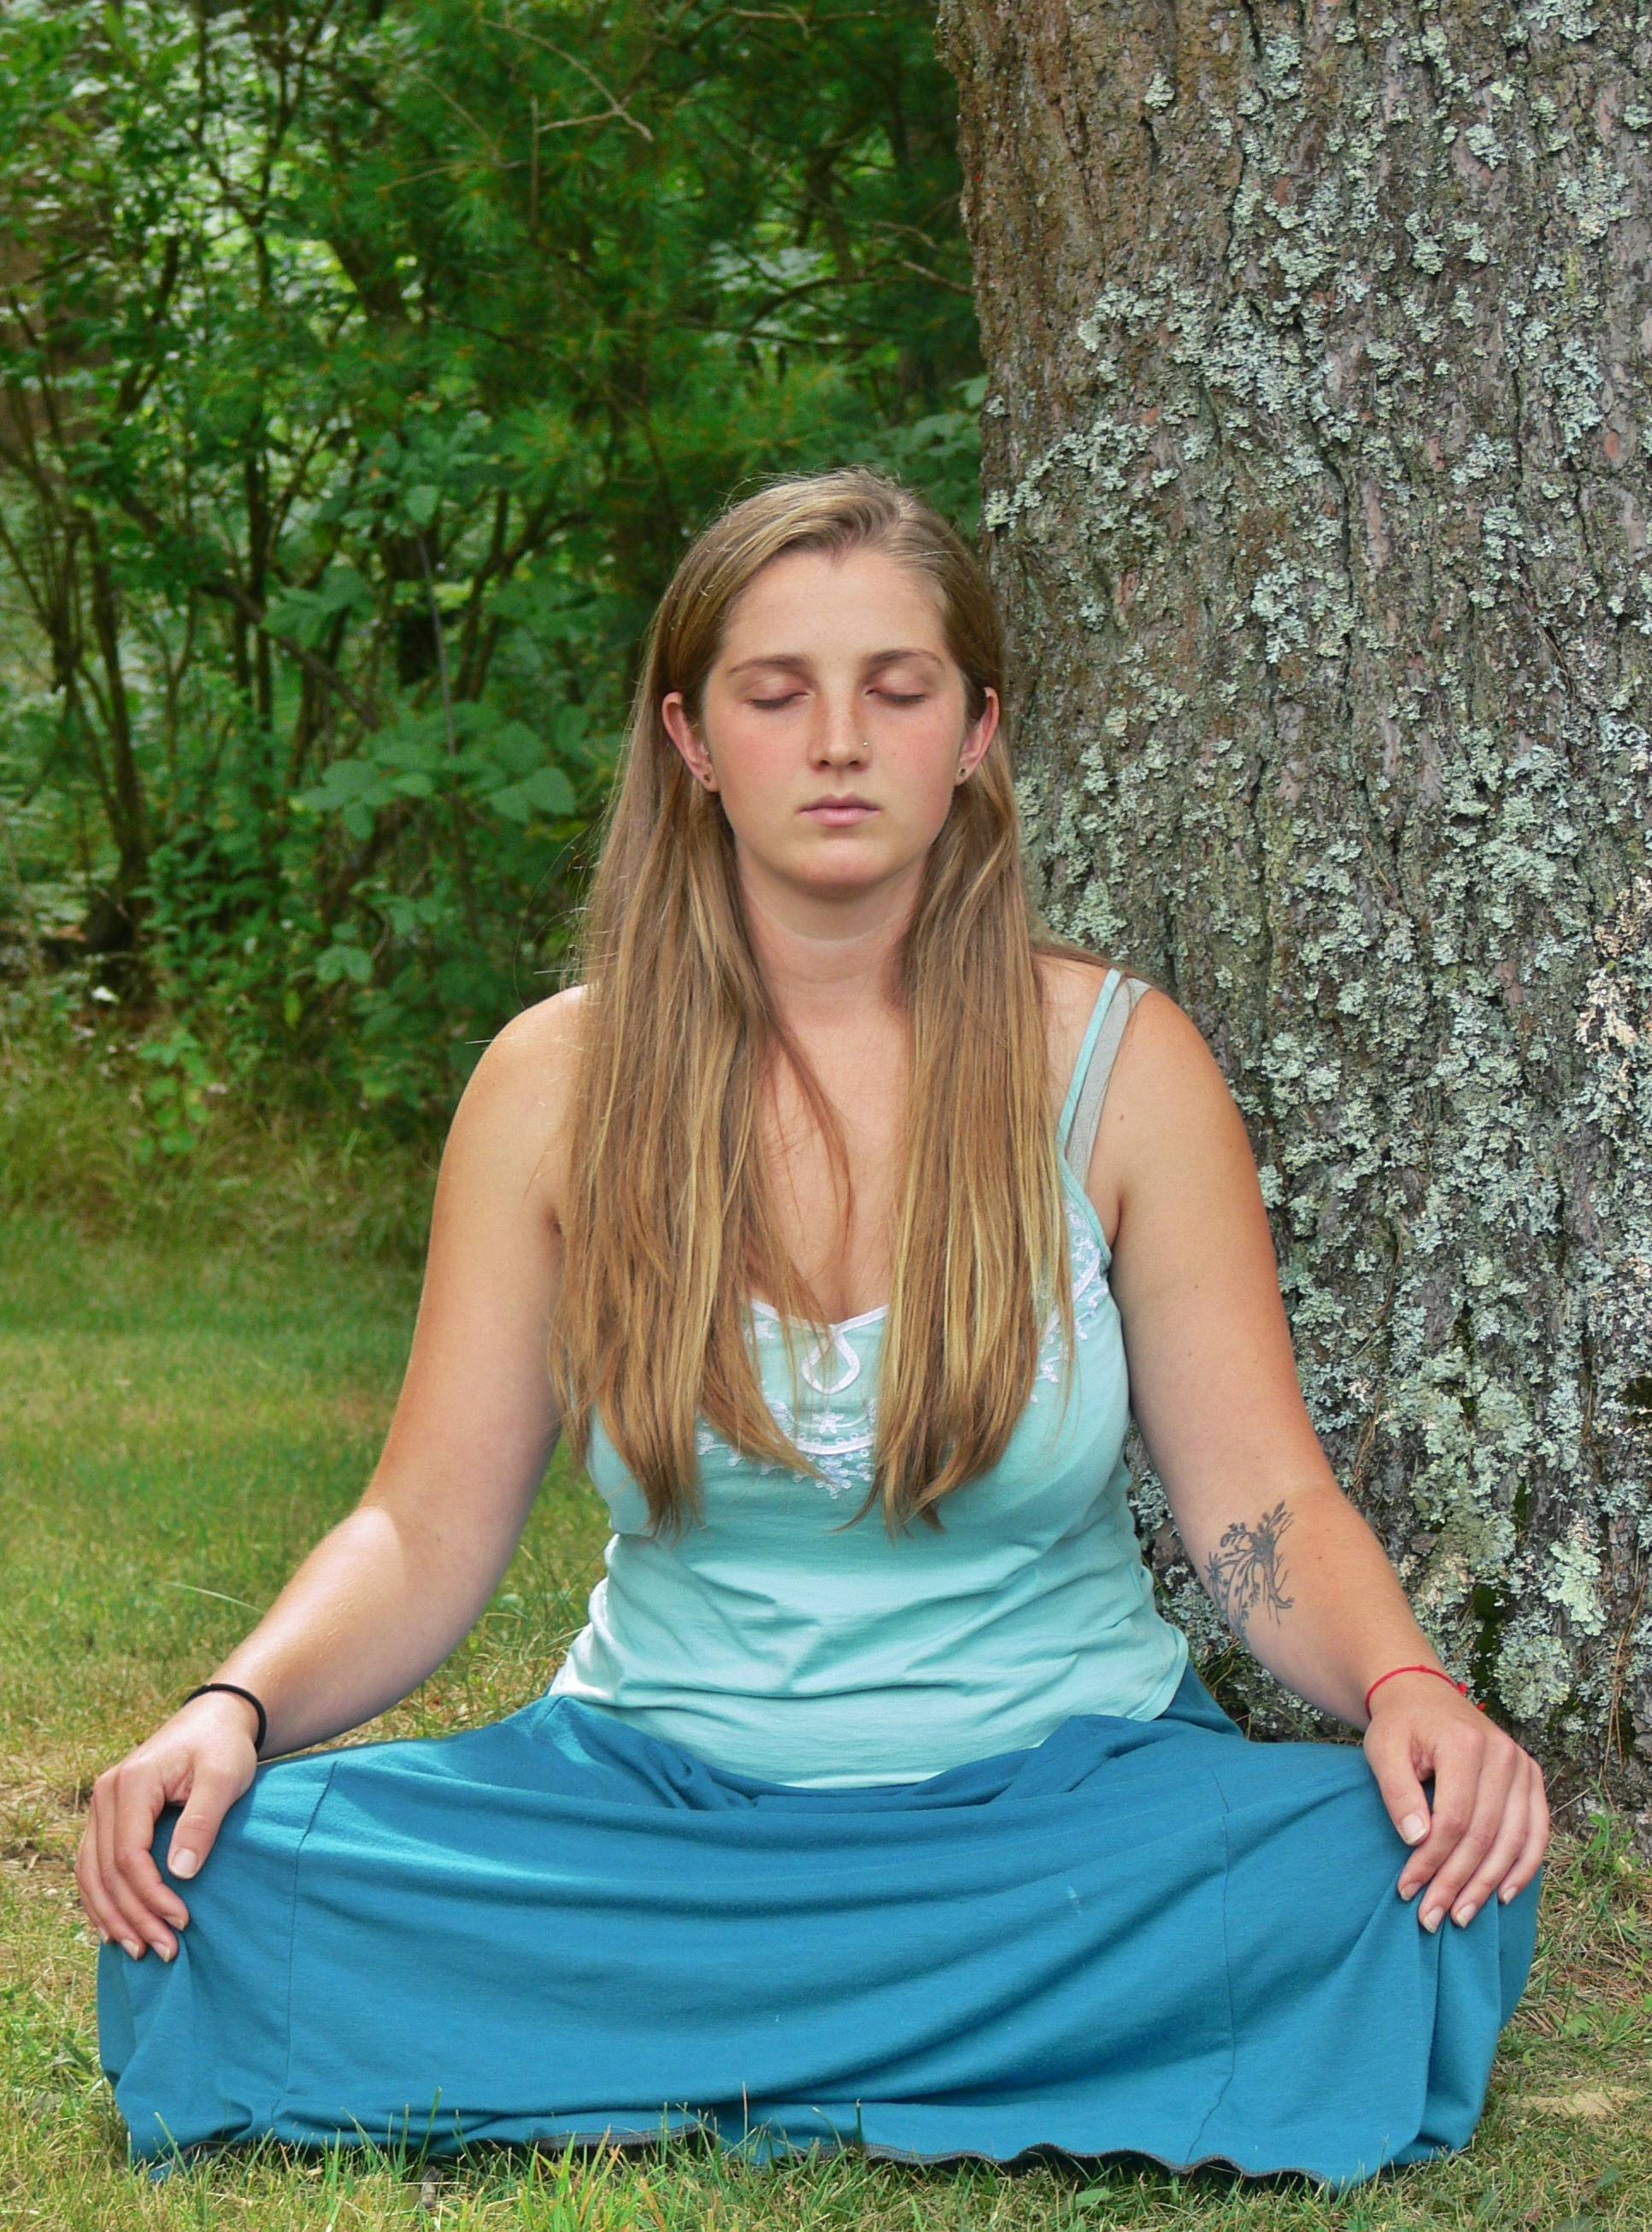 A woman sits in meditation on the grounds of the Insight Meditation Society Retreat Center in Barre, Mass. The Buddhist-influenced center offers silent retreats that allow individuals to take a break from the stresses and demands of daily modern life.